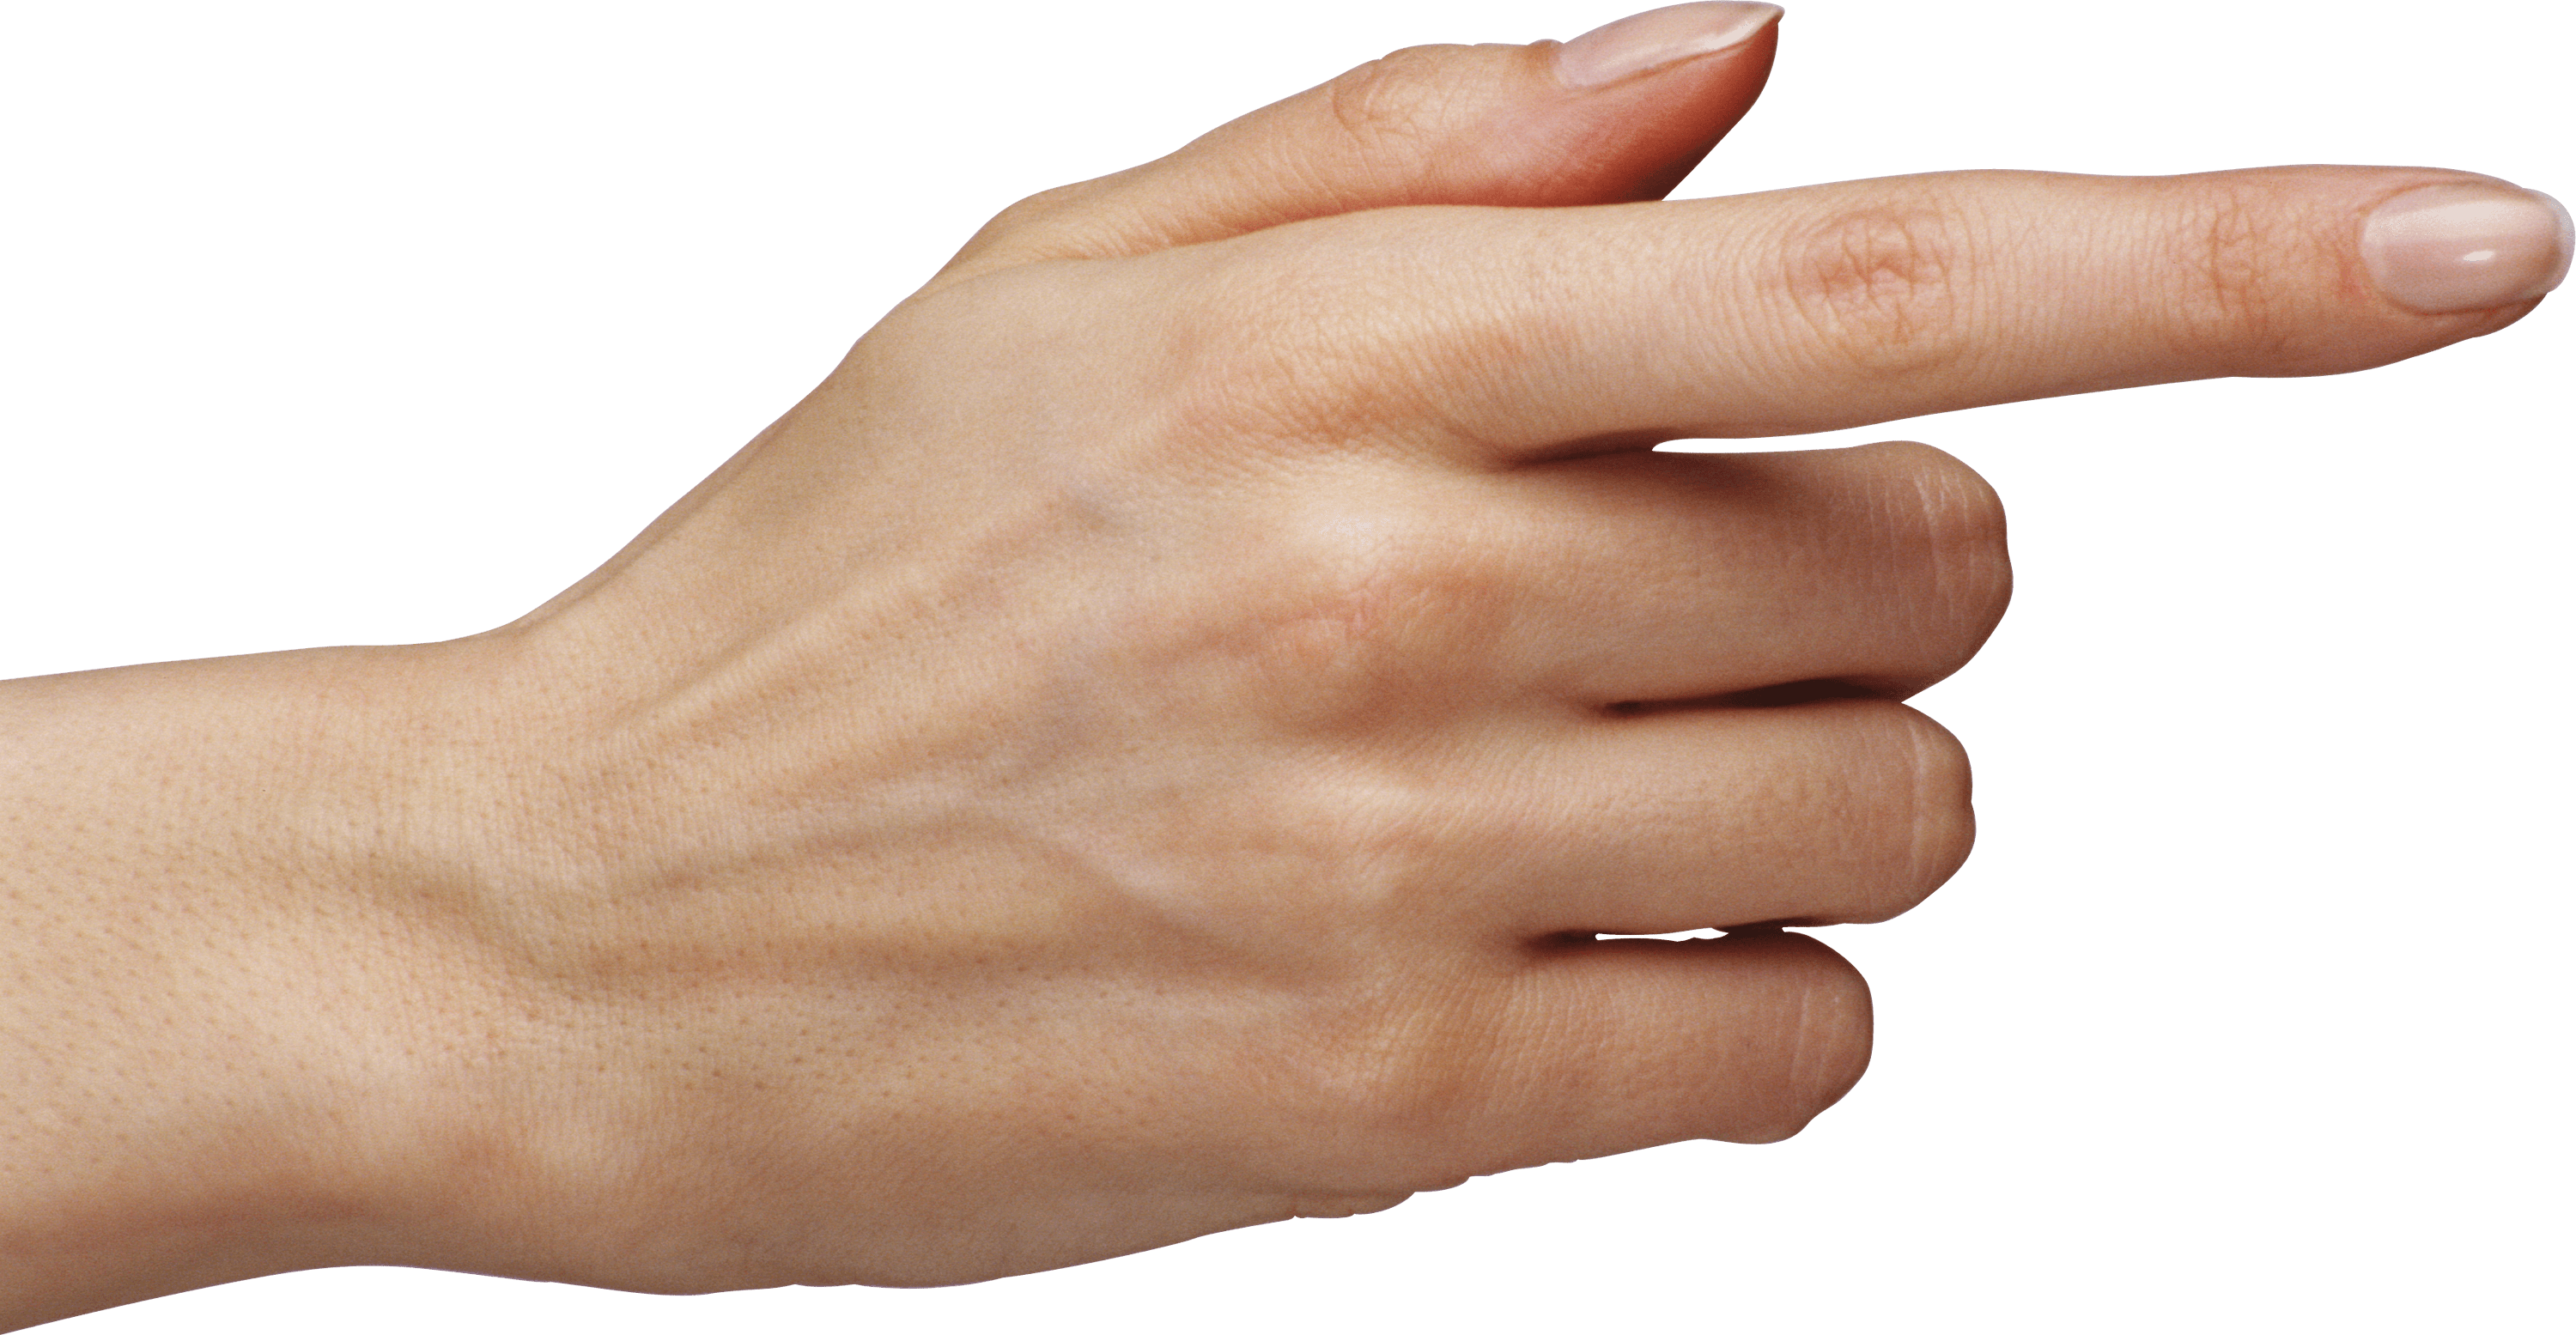 Hand, Finger Free Download Transparent PNG Images